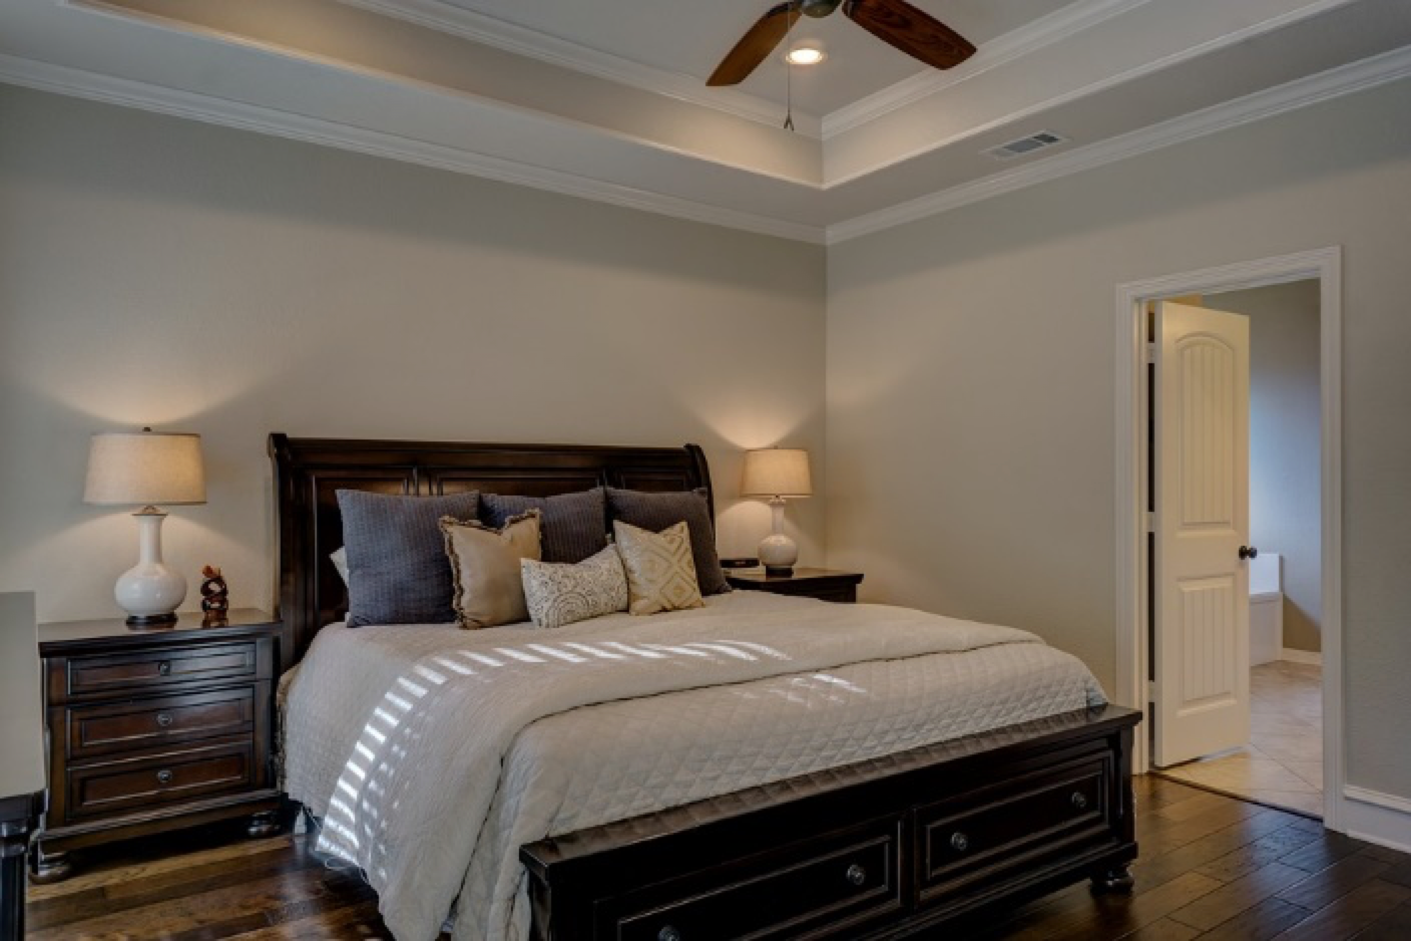 Bedroom Furniture Shopping Tips for the Discerning Buyer